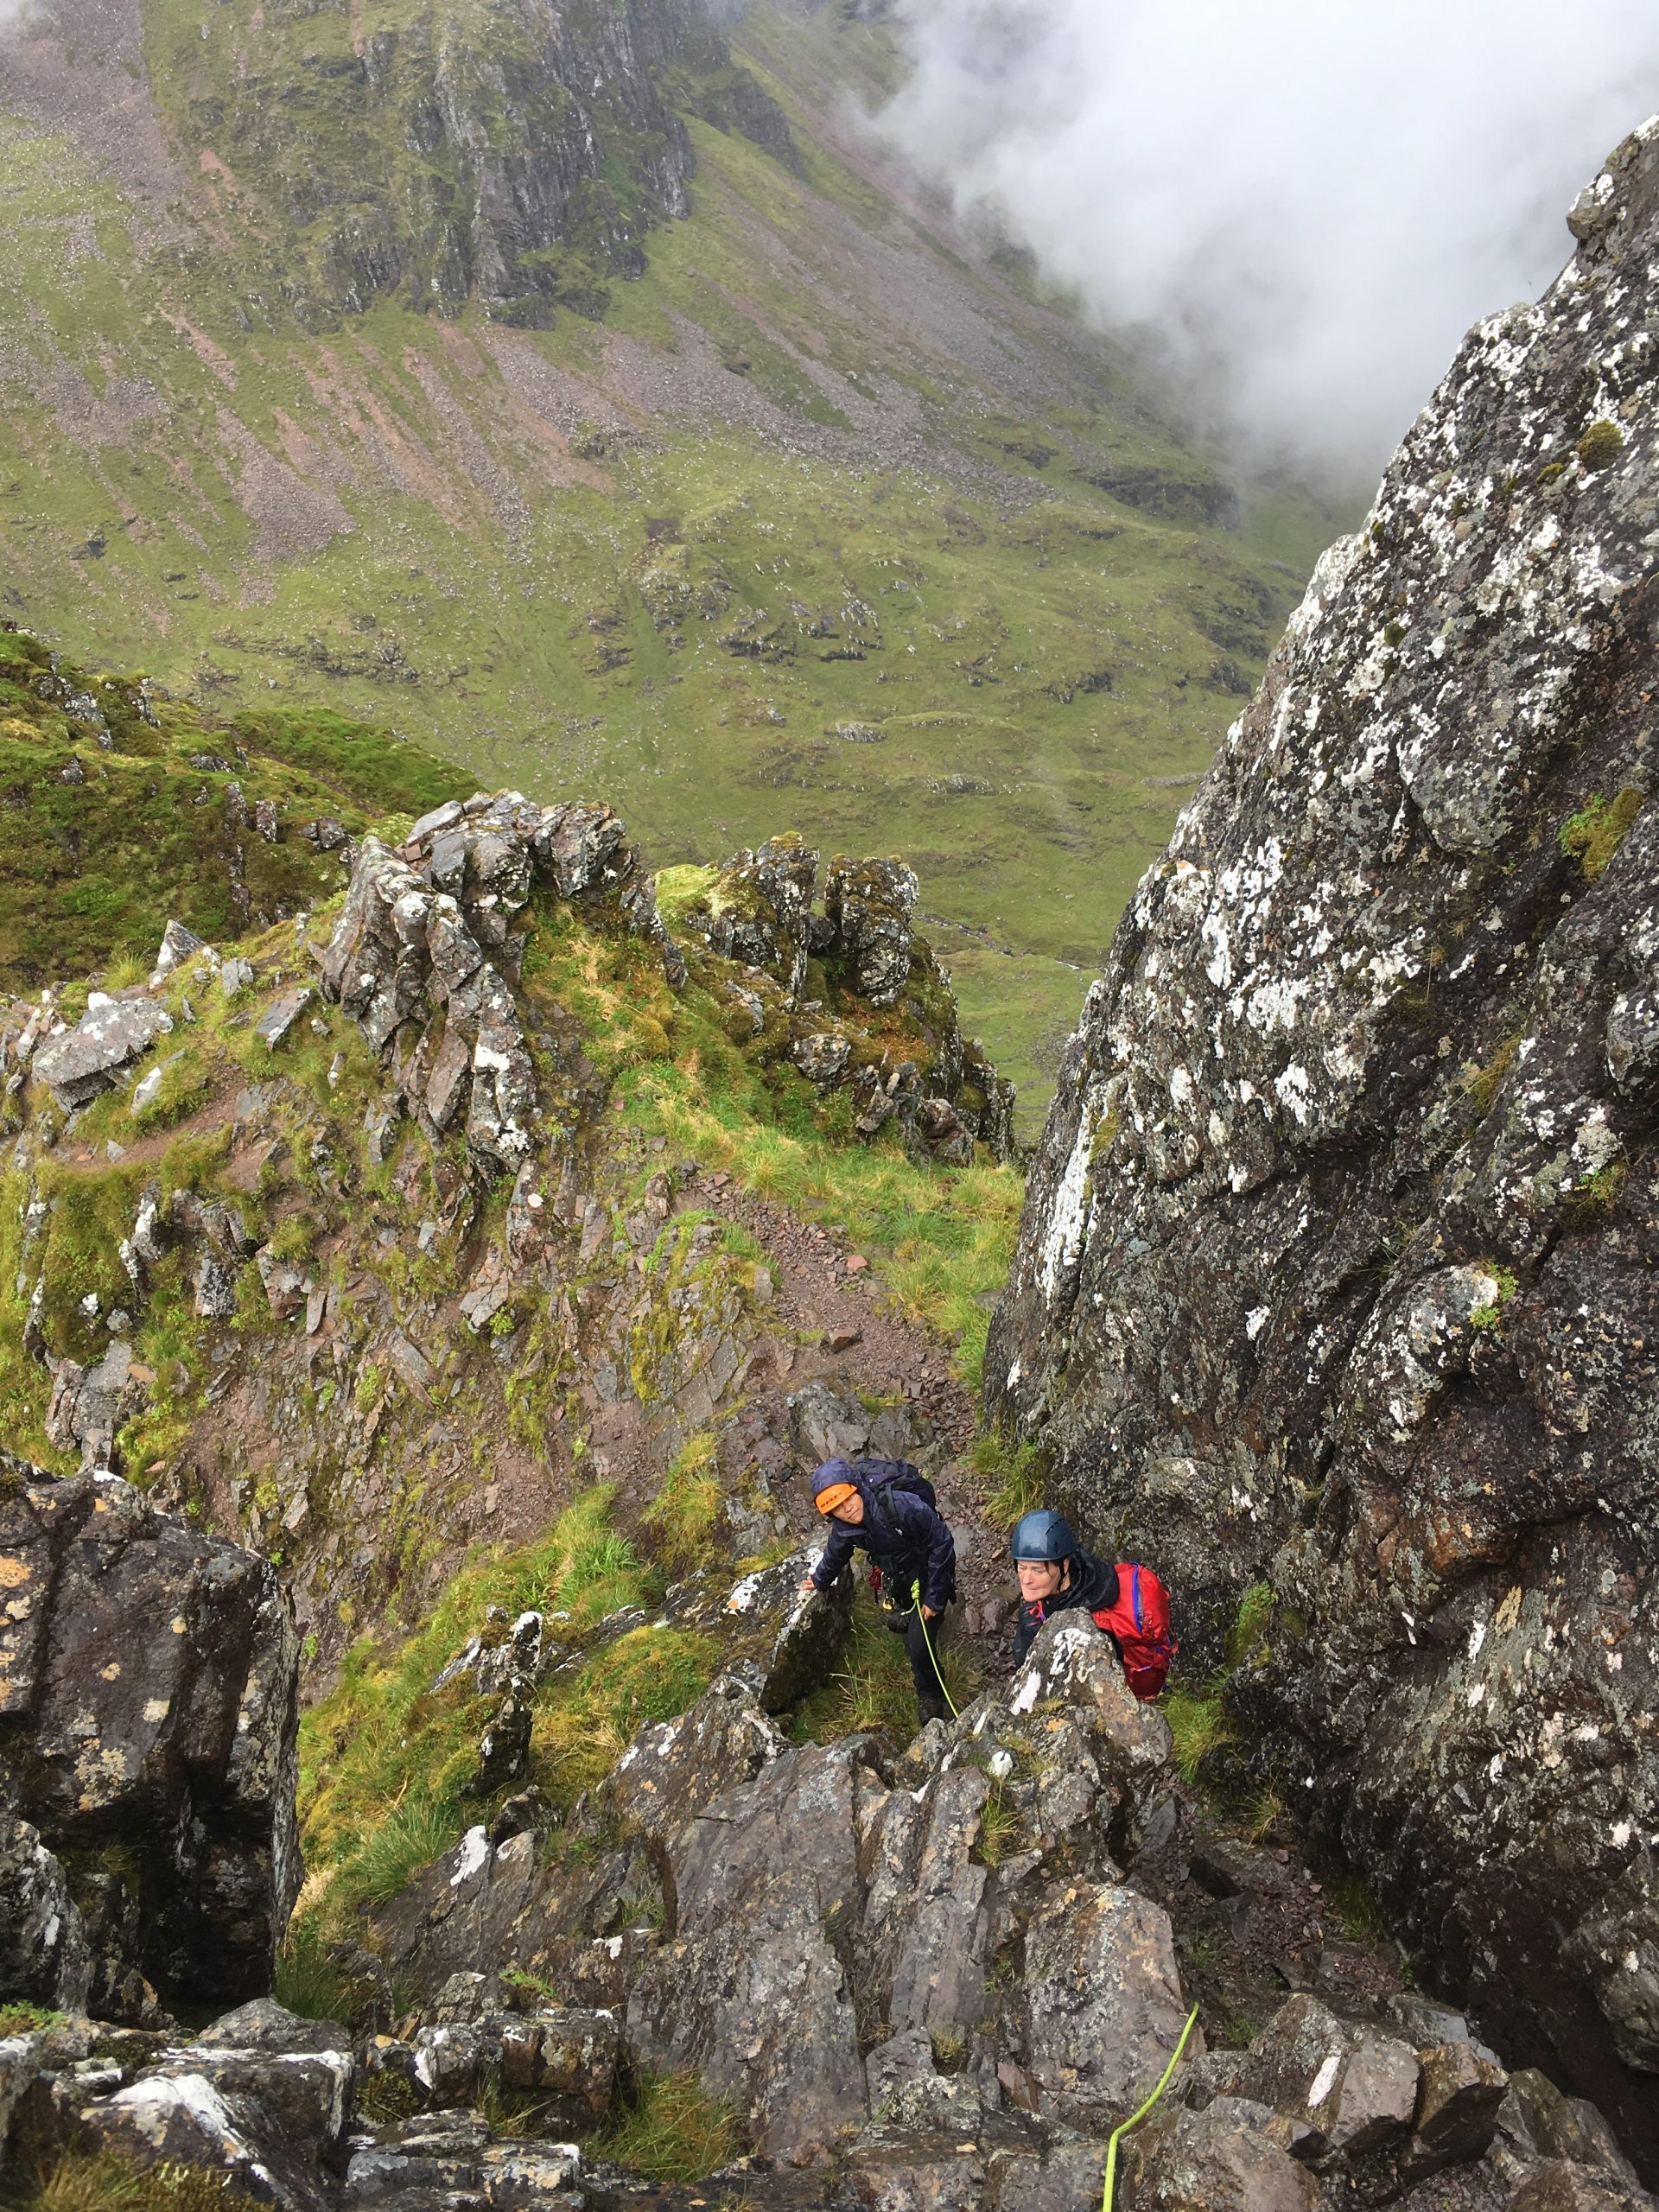 Two climbers wait their turn to move at one of the steeper sections while scrambling the Aonach Eagach Ridge in Glencoe